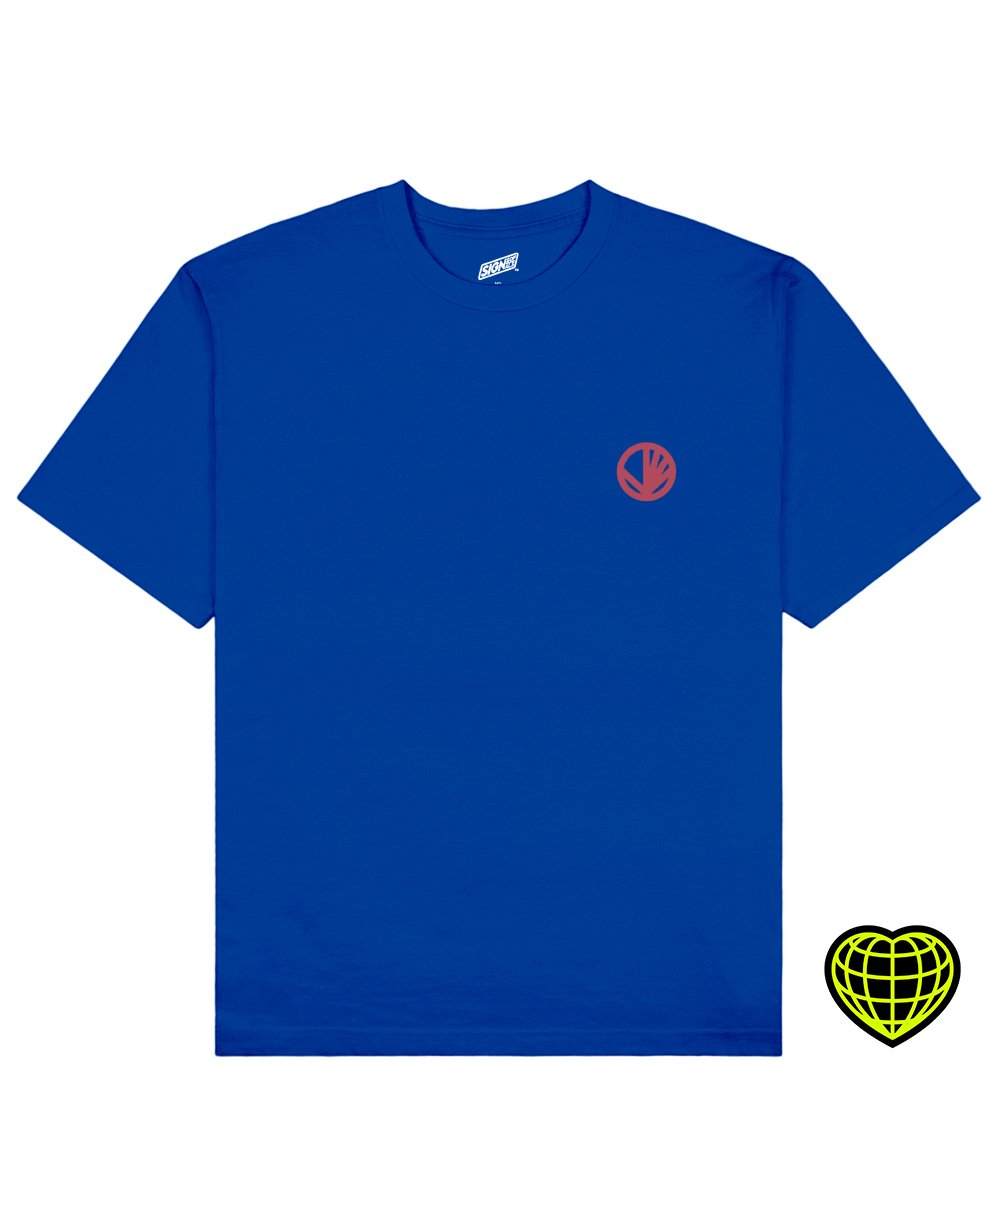 Circle with beams Print T-shirt in Blue - T-Shirts - Signs of Signals - BRANMA